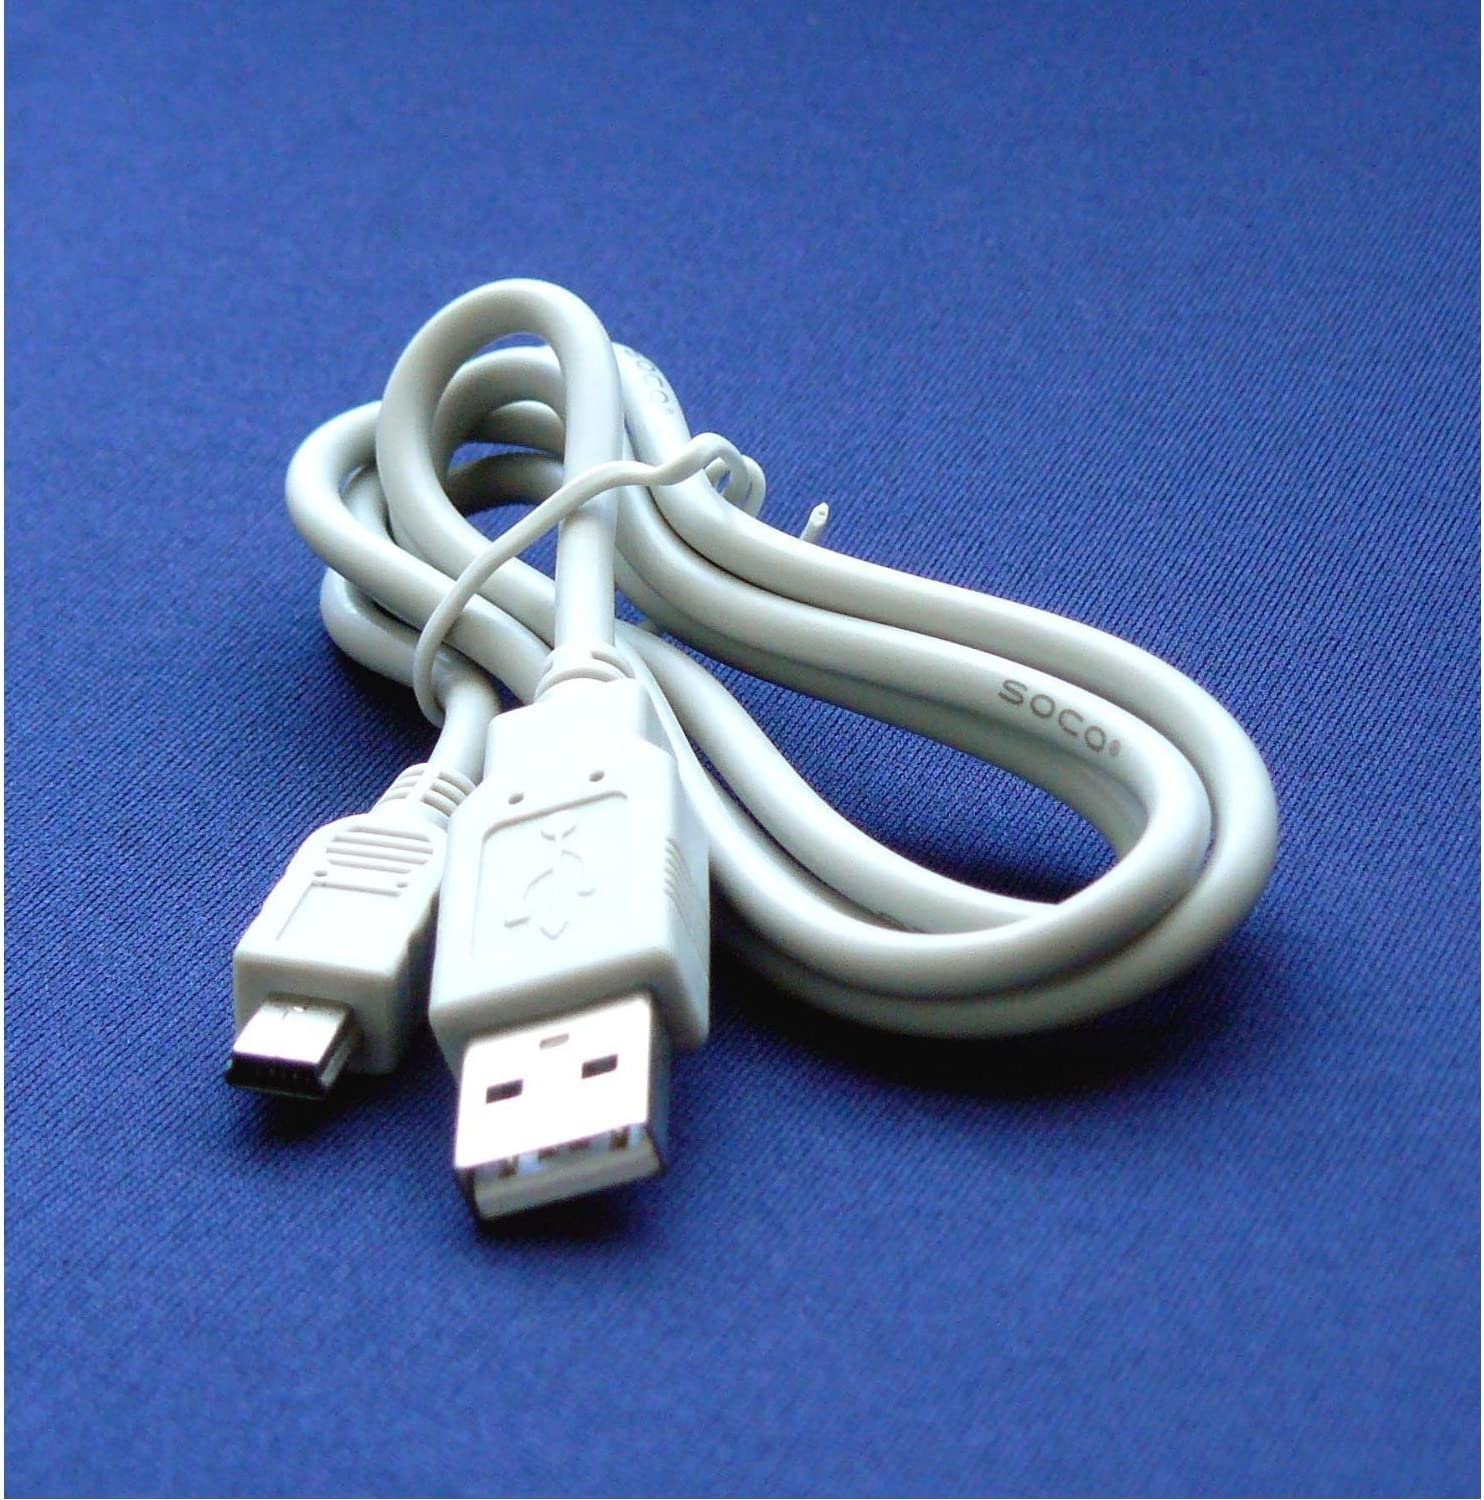 For Fujifilm FinePix S9100 USB Data Transfer Charger Cable Lead White